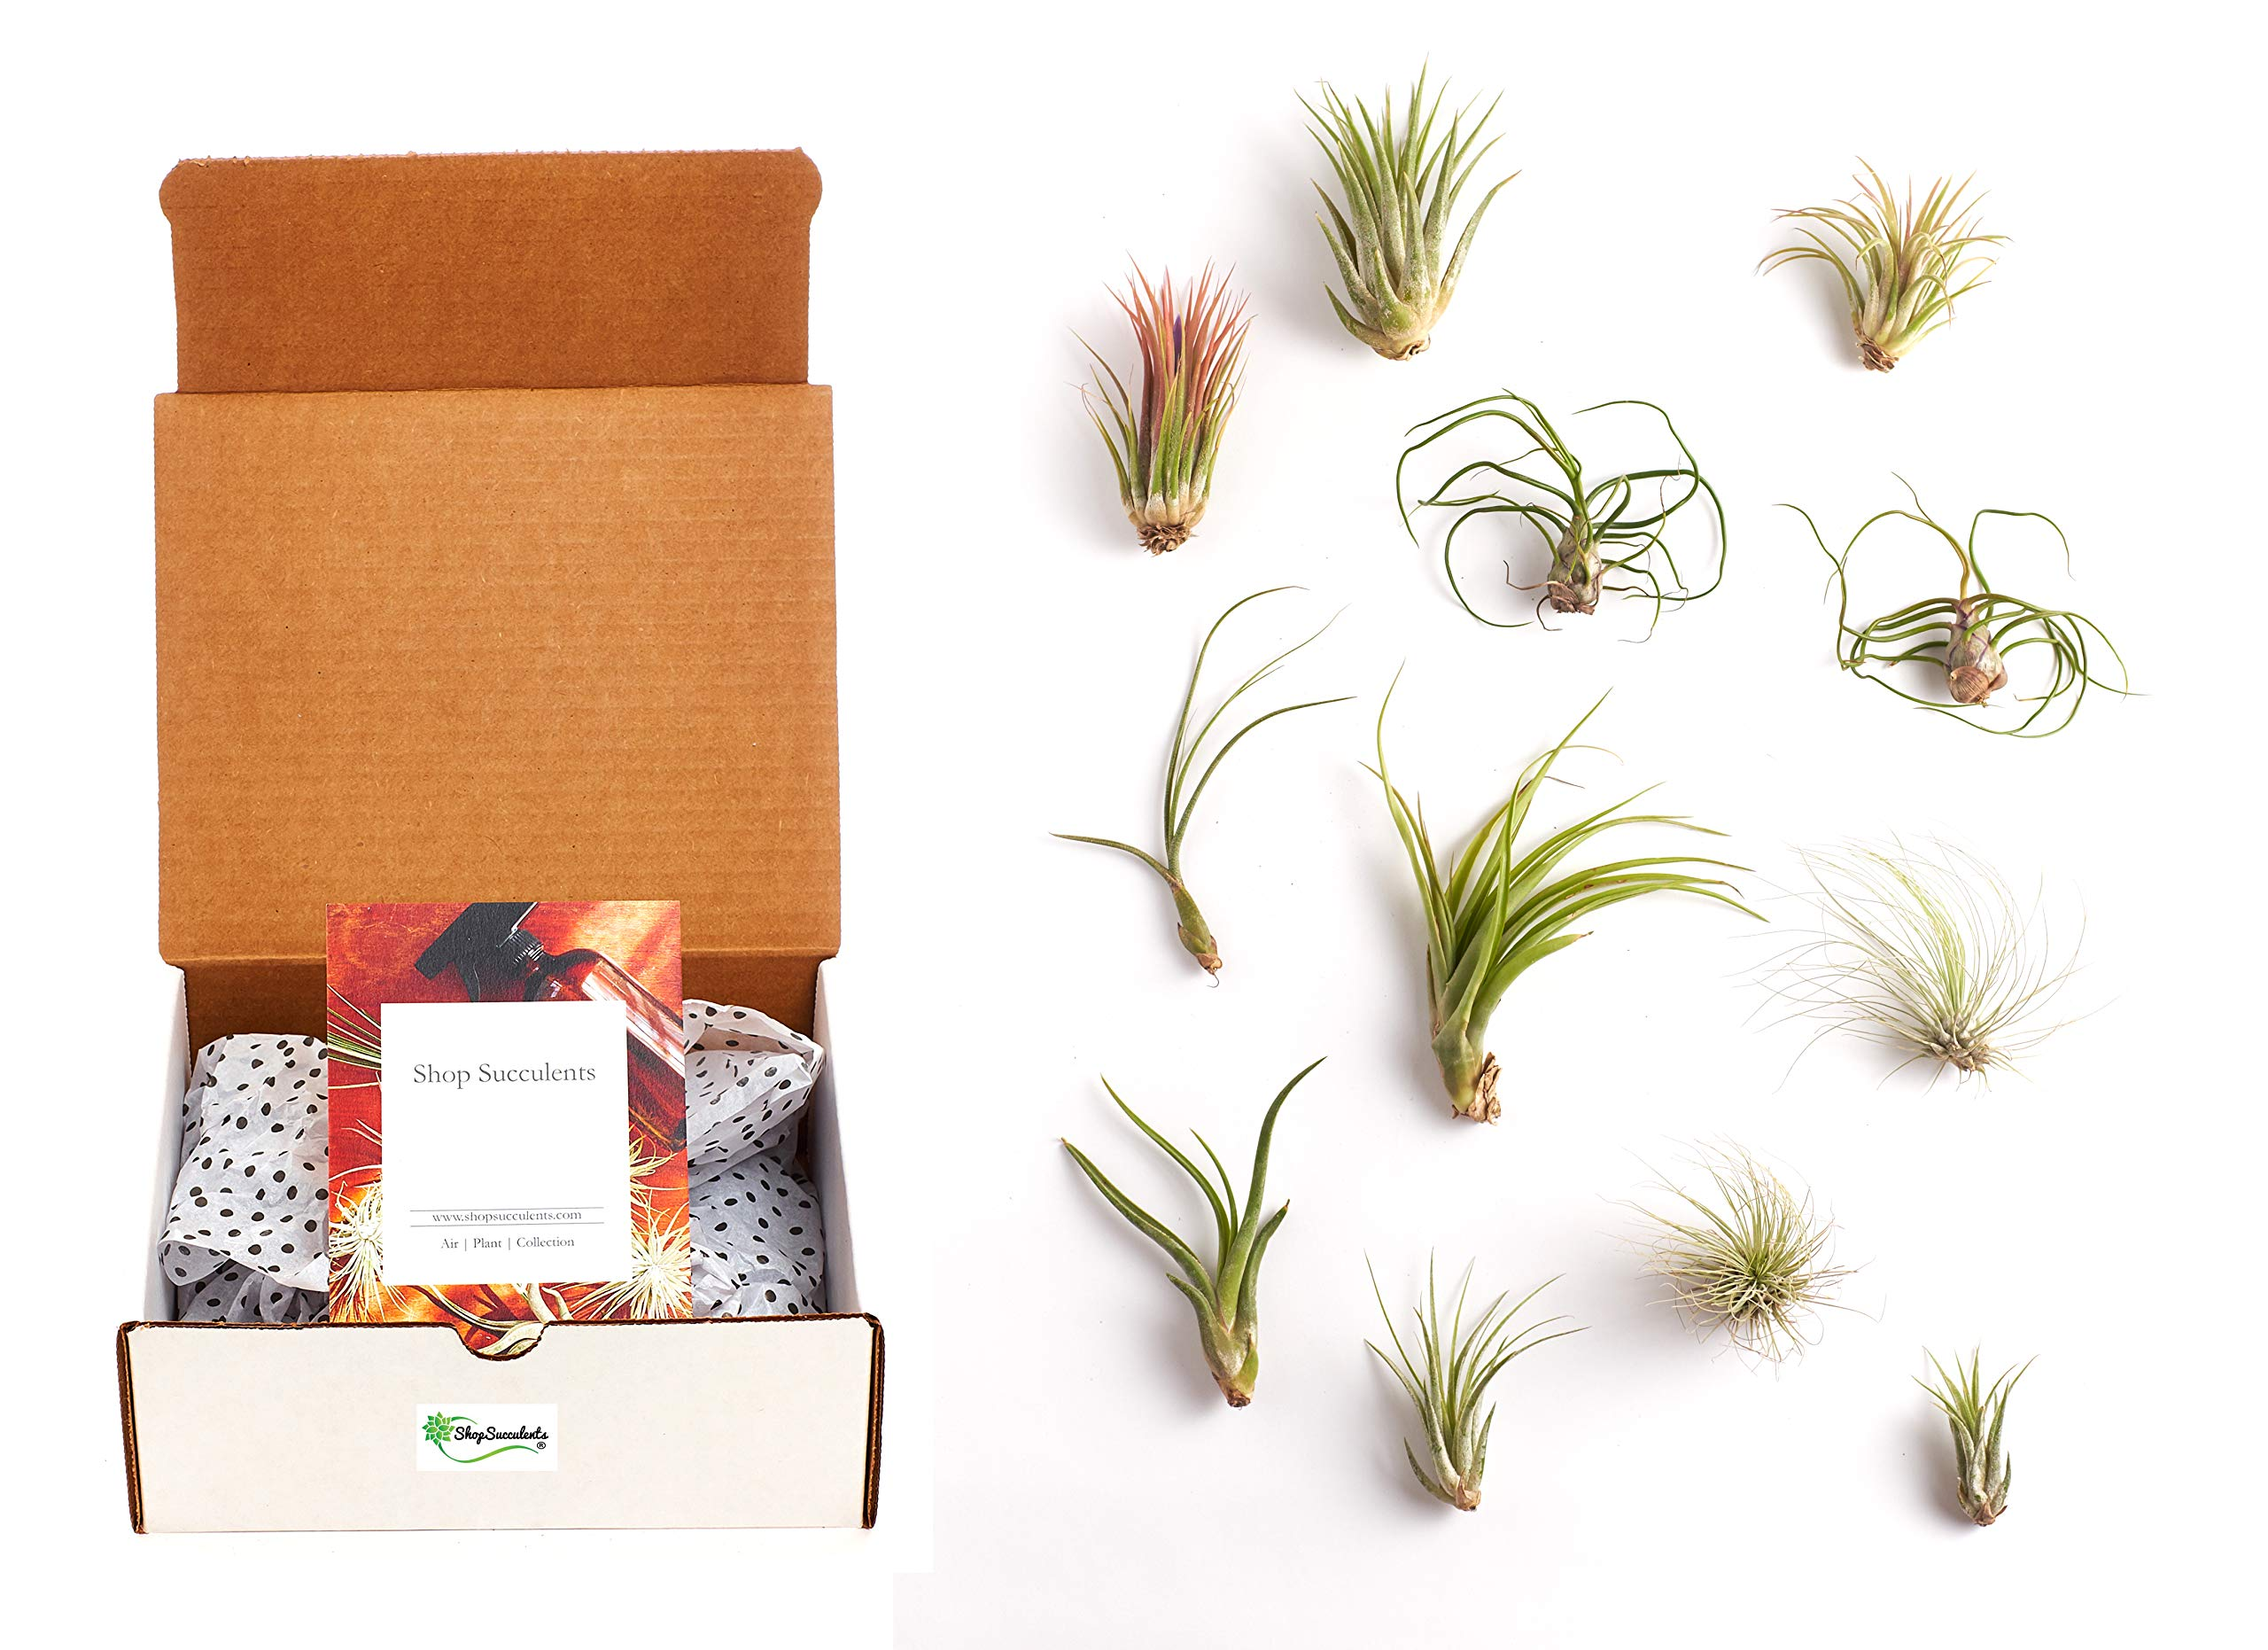 Shop Succulents | Assorted Collection of Live Air Plants, Hand Selected Variety Pack of Air Succulents | Collection of 12